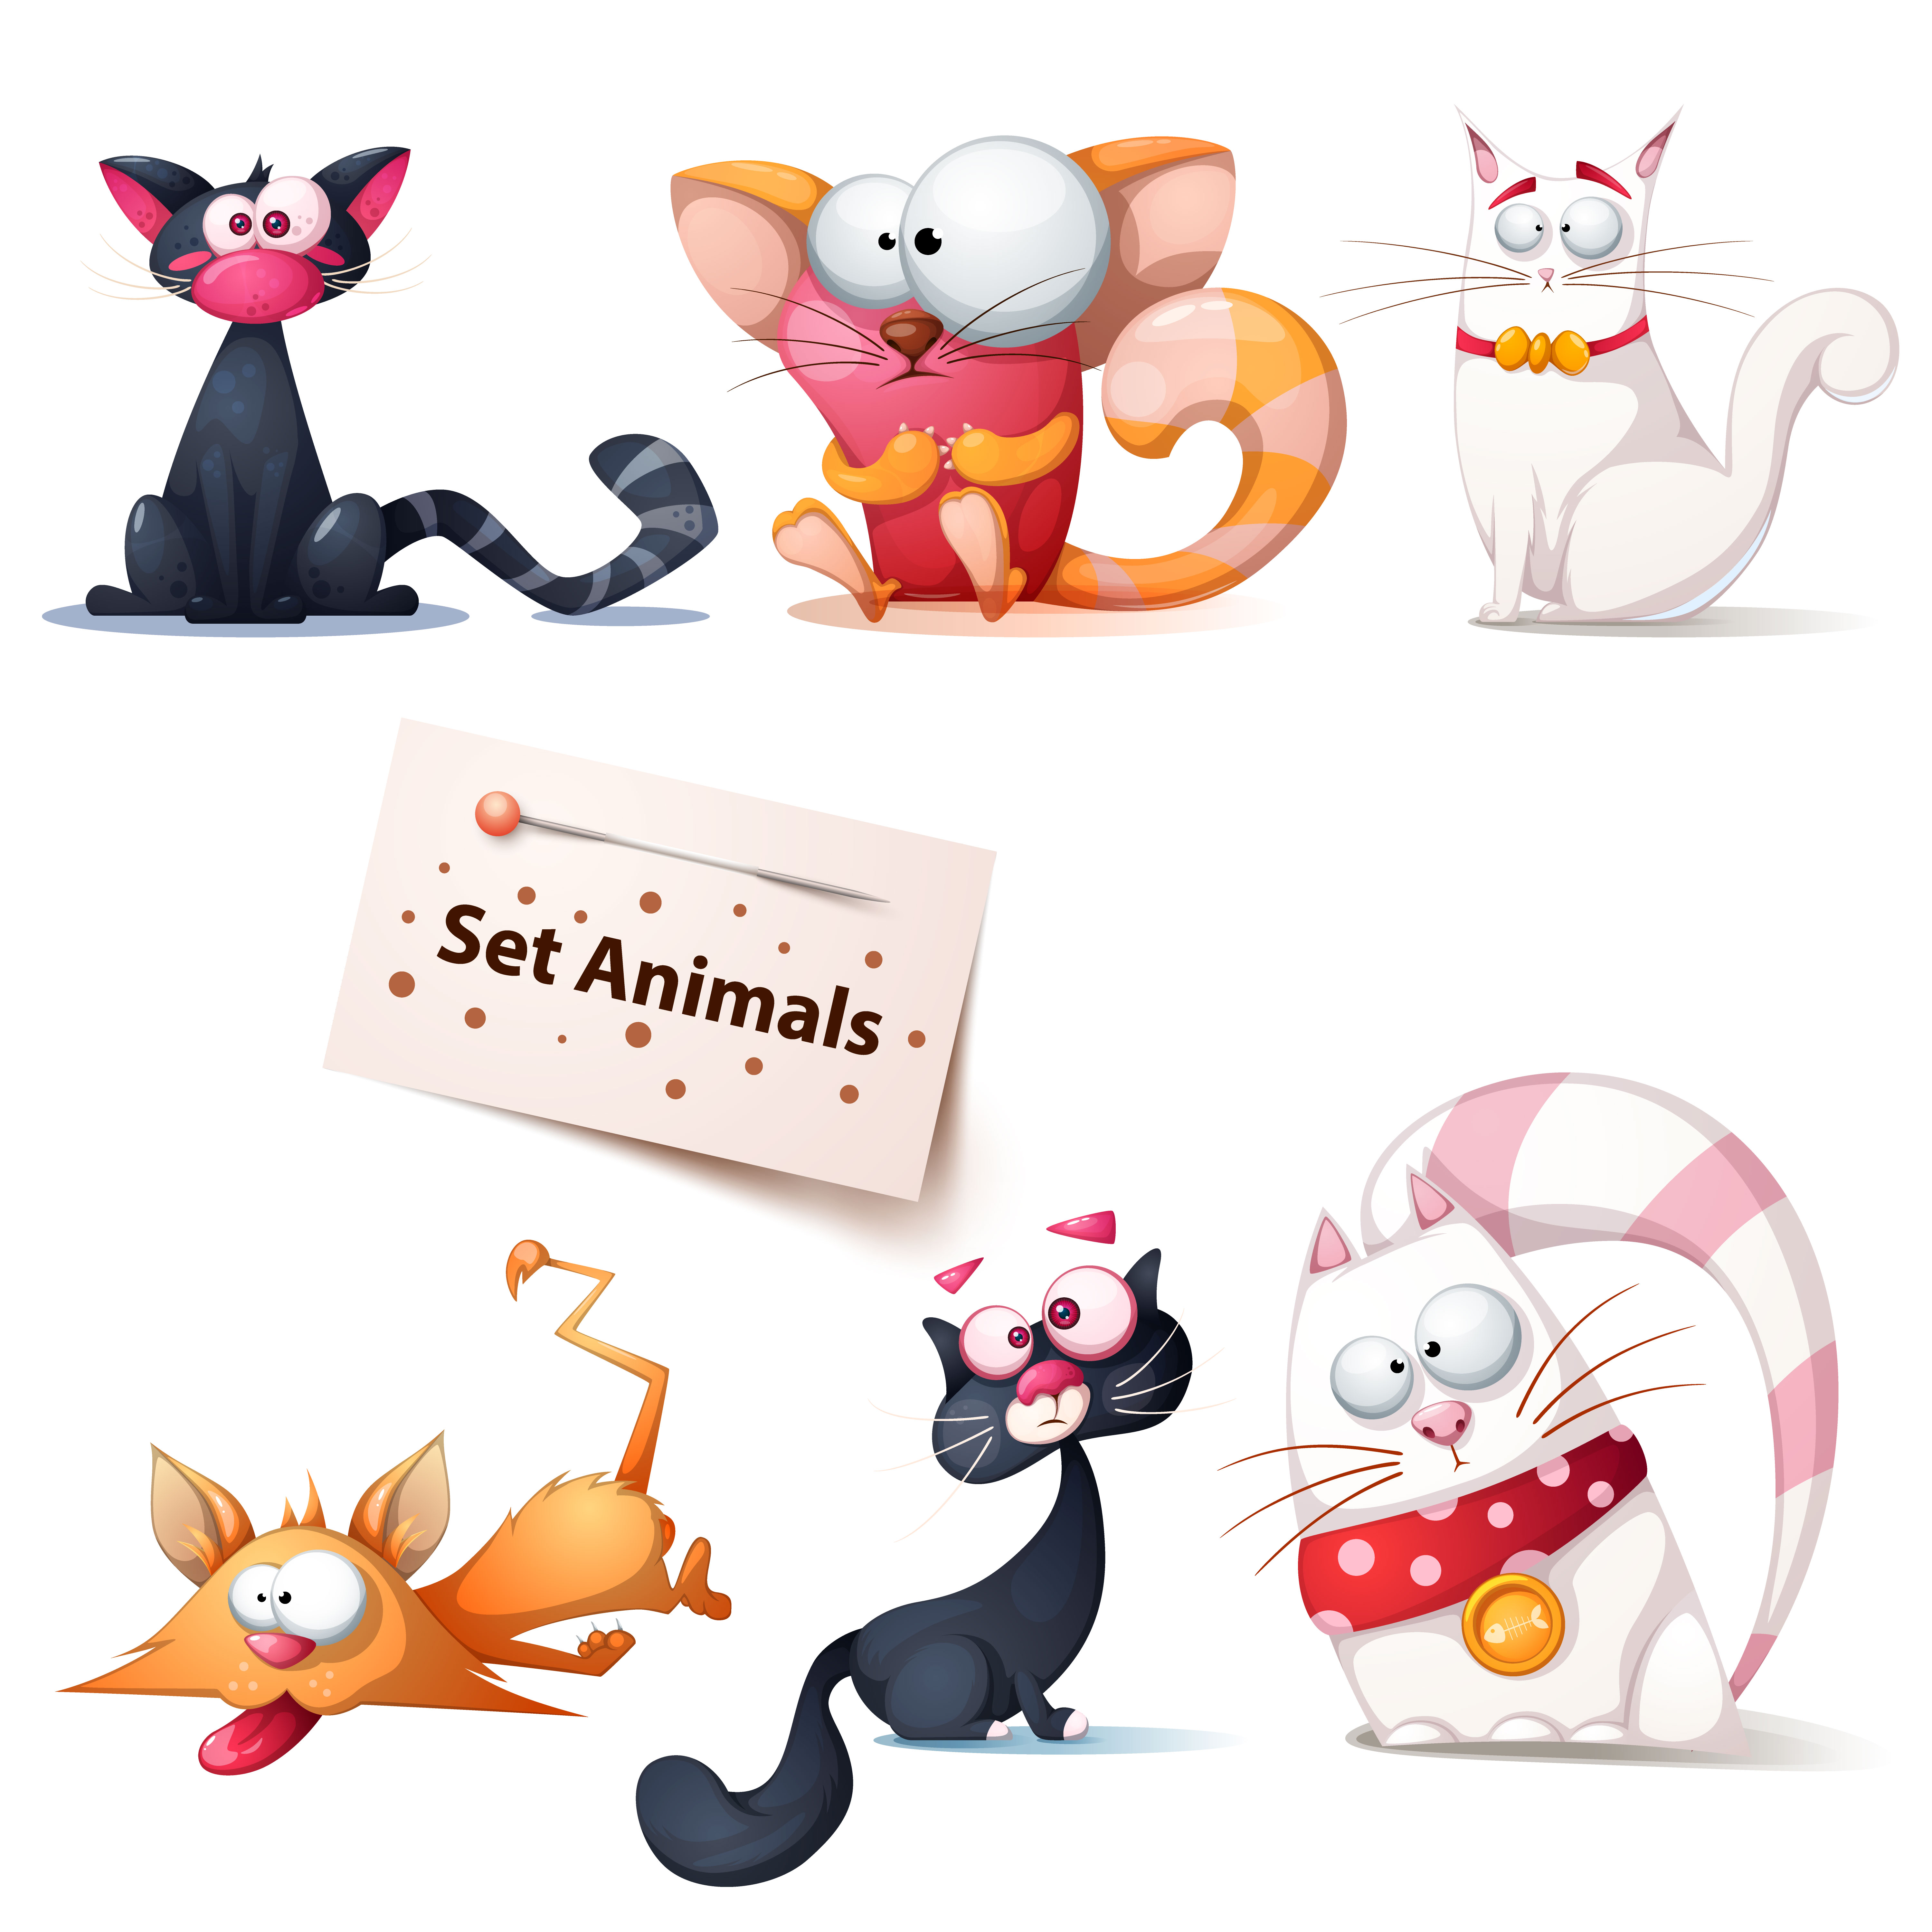 Cute, funny, crazy cat illustration. - Download Free ...